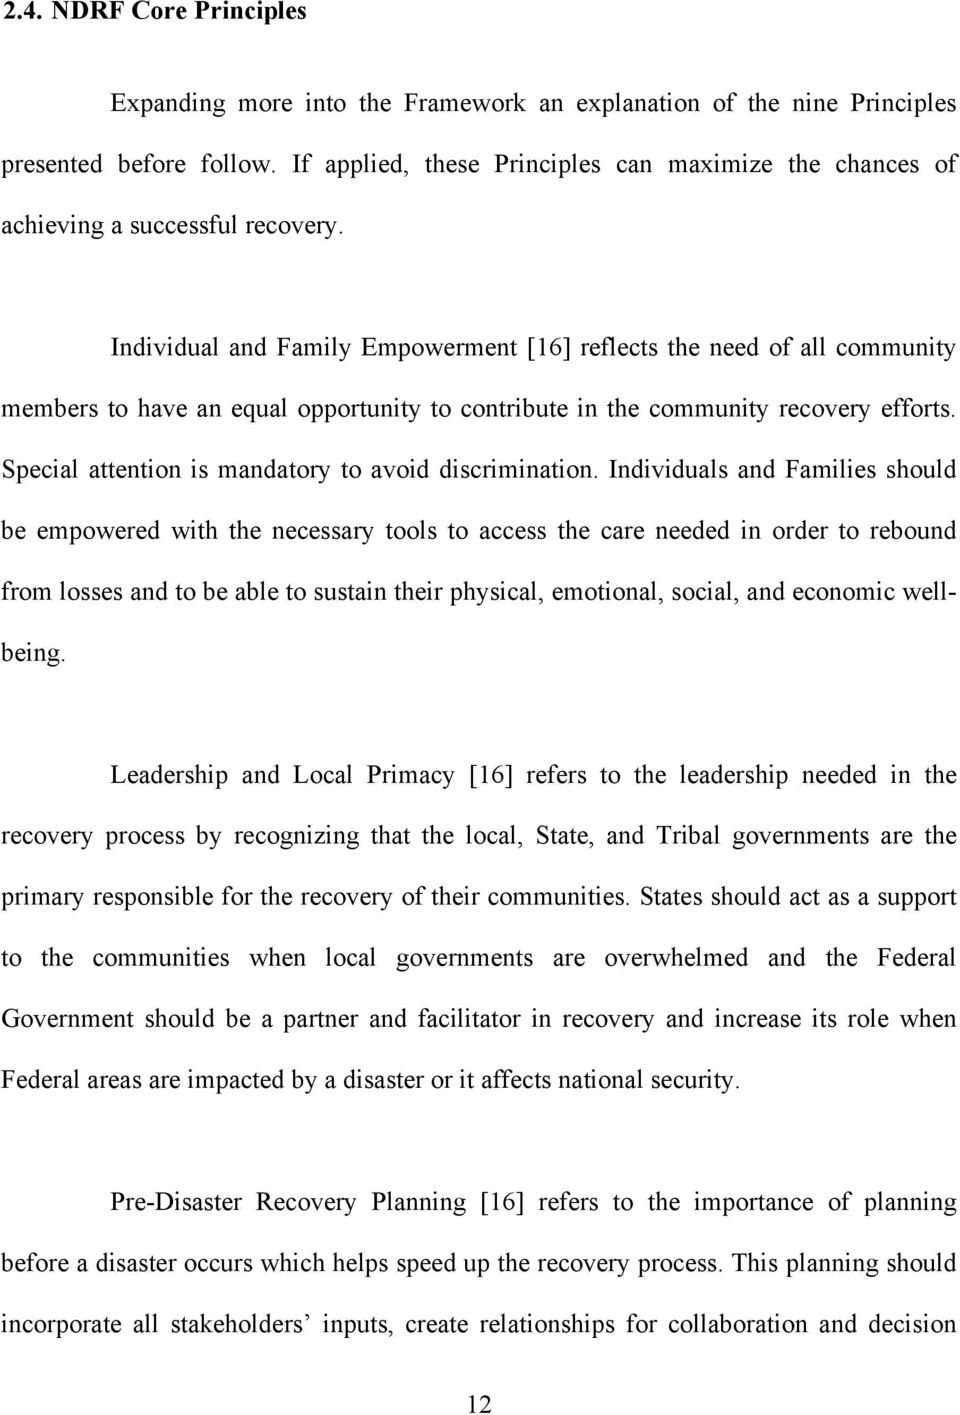 Individual and Family Empowerment [16] reflects the need of all community members to have an equal opportunity to contribute in the community recovery efforts.